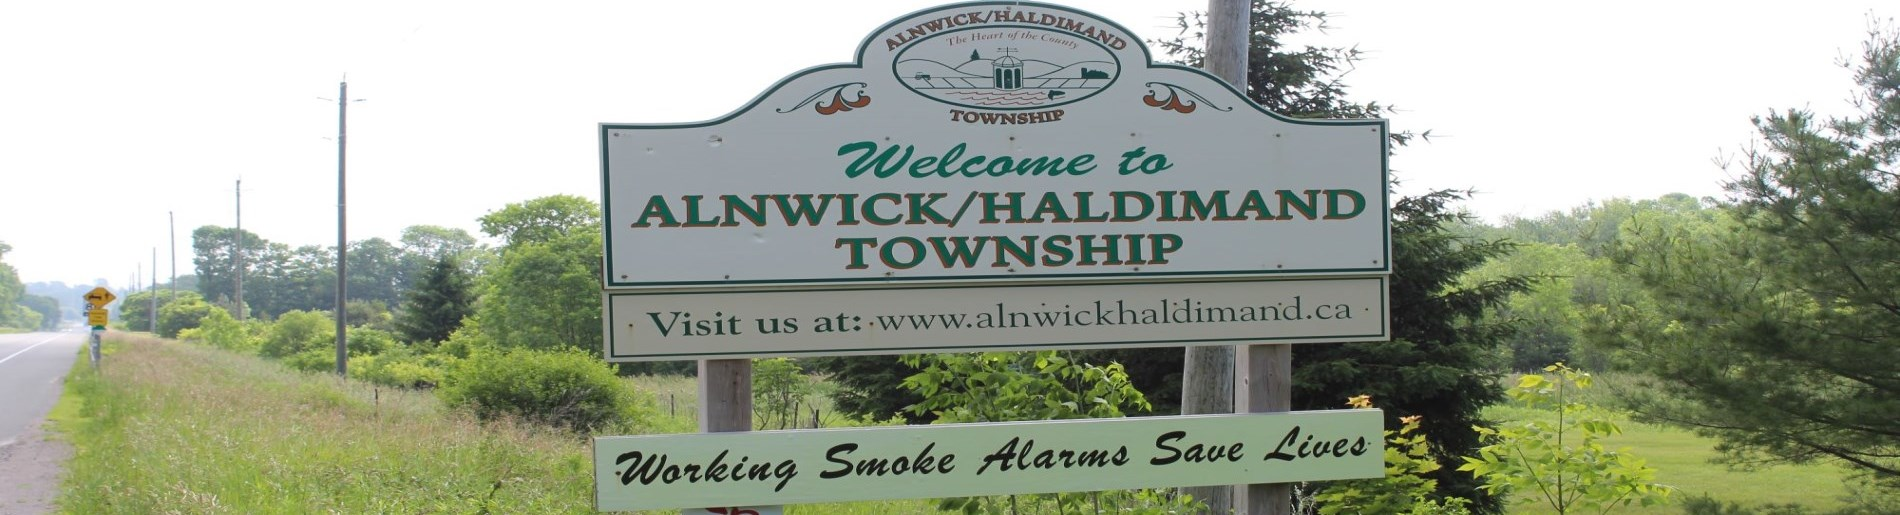 Township of Alnwick/Haldimand sign